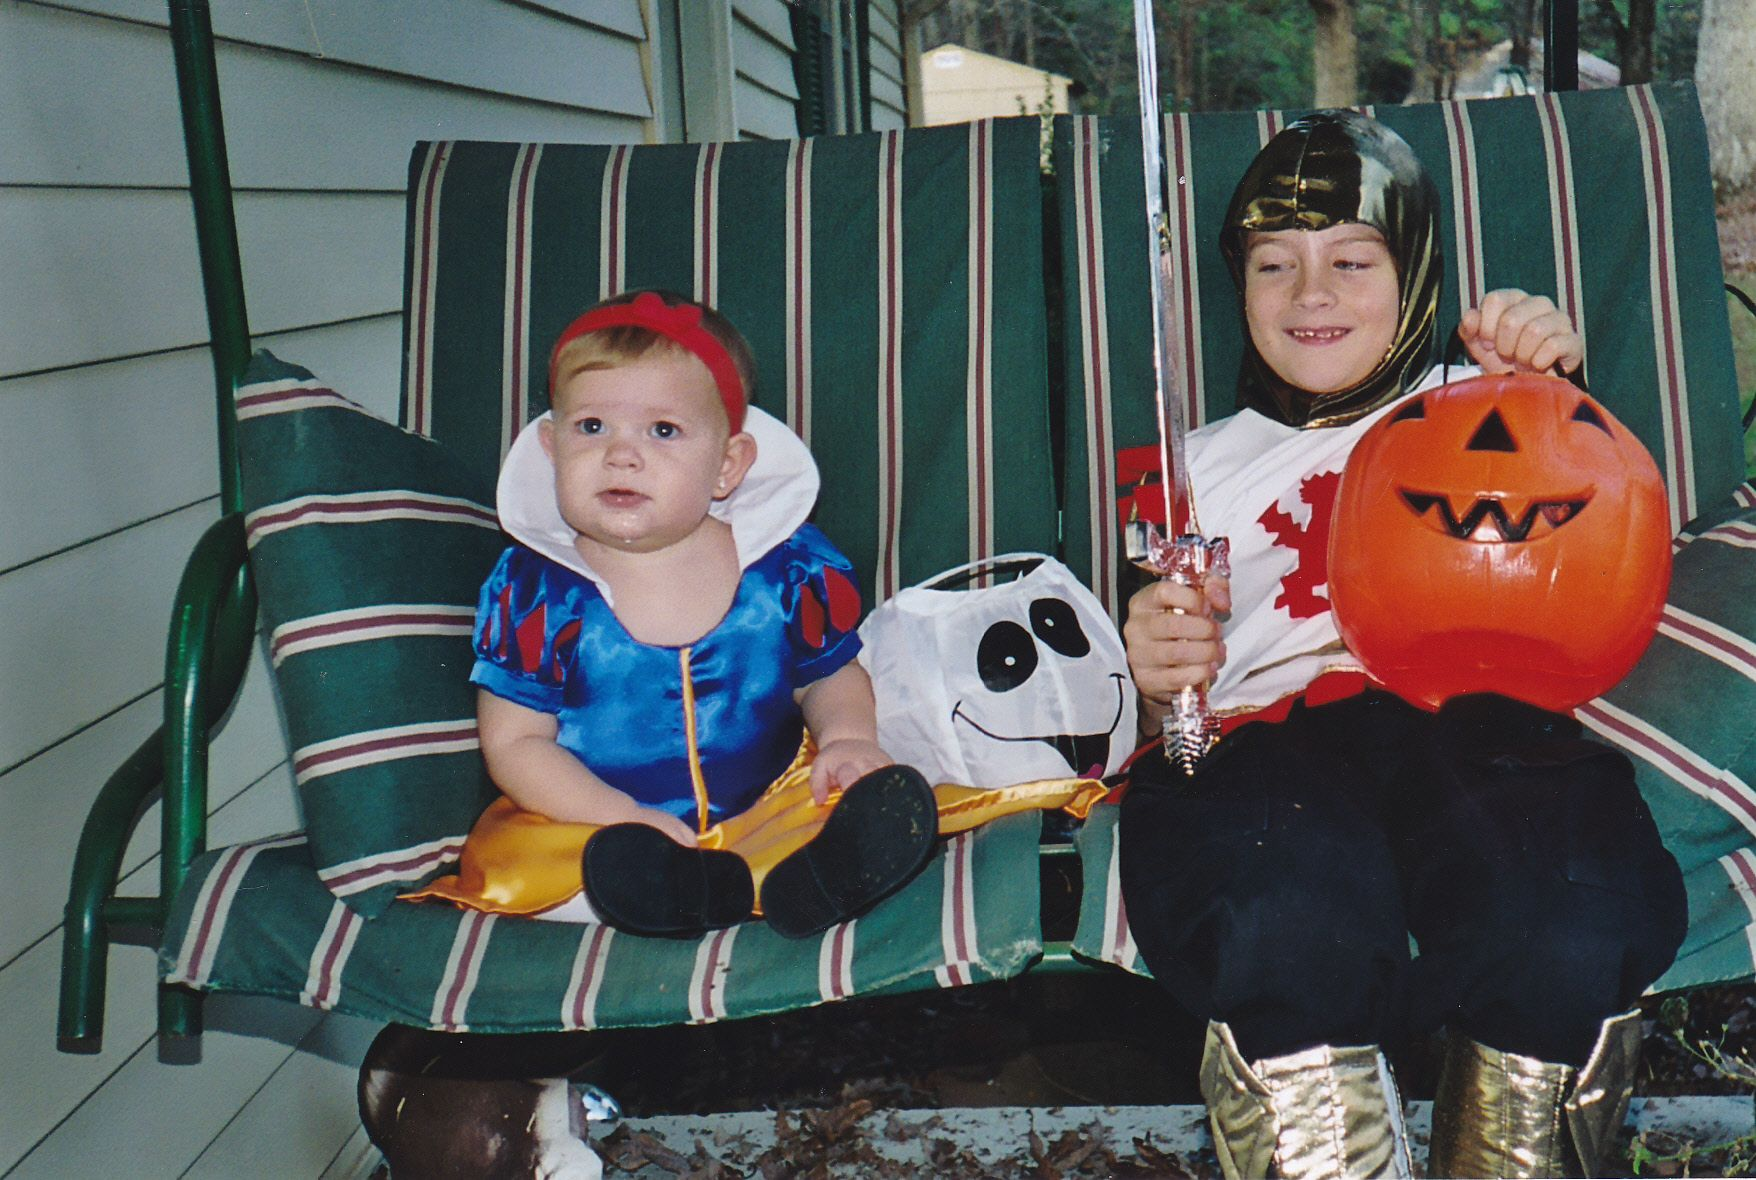 jakob and layla costumes 2004 halloween | brenda made | pinterest